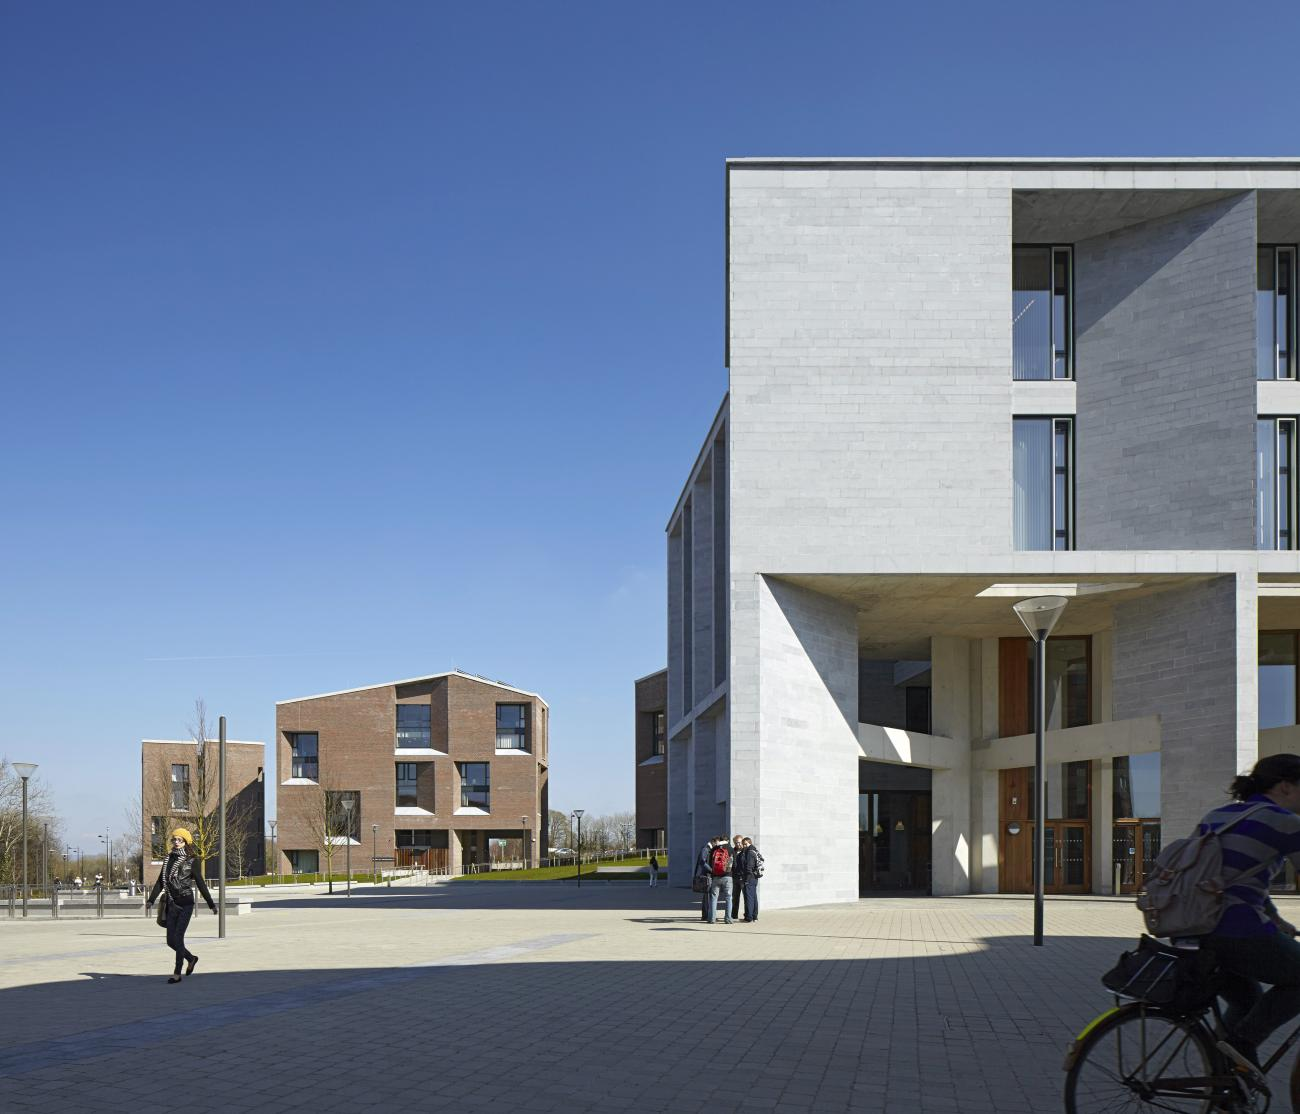 2020 Pritzker Prize goes to Yvonne Farrell and Shelley McNamara of Grafton Architects. Pictured: Medical School, University of Limerick - Photo courtesy of Dennis Gilbert.